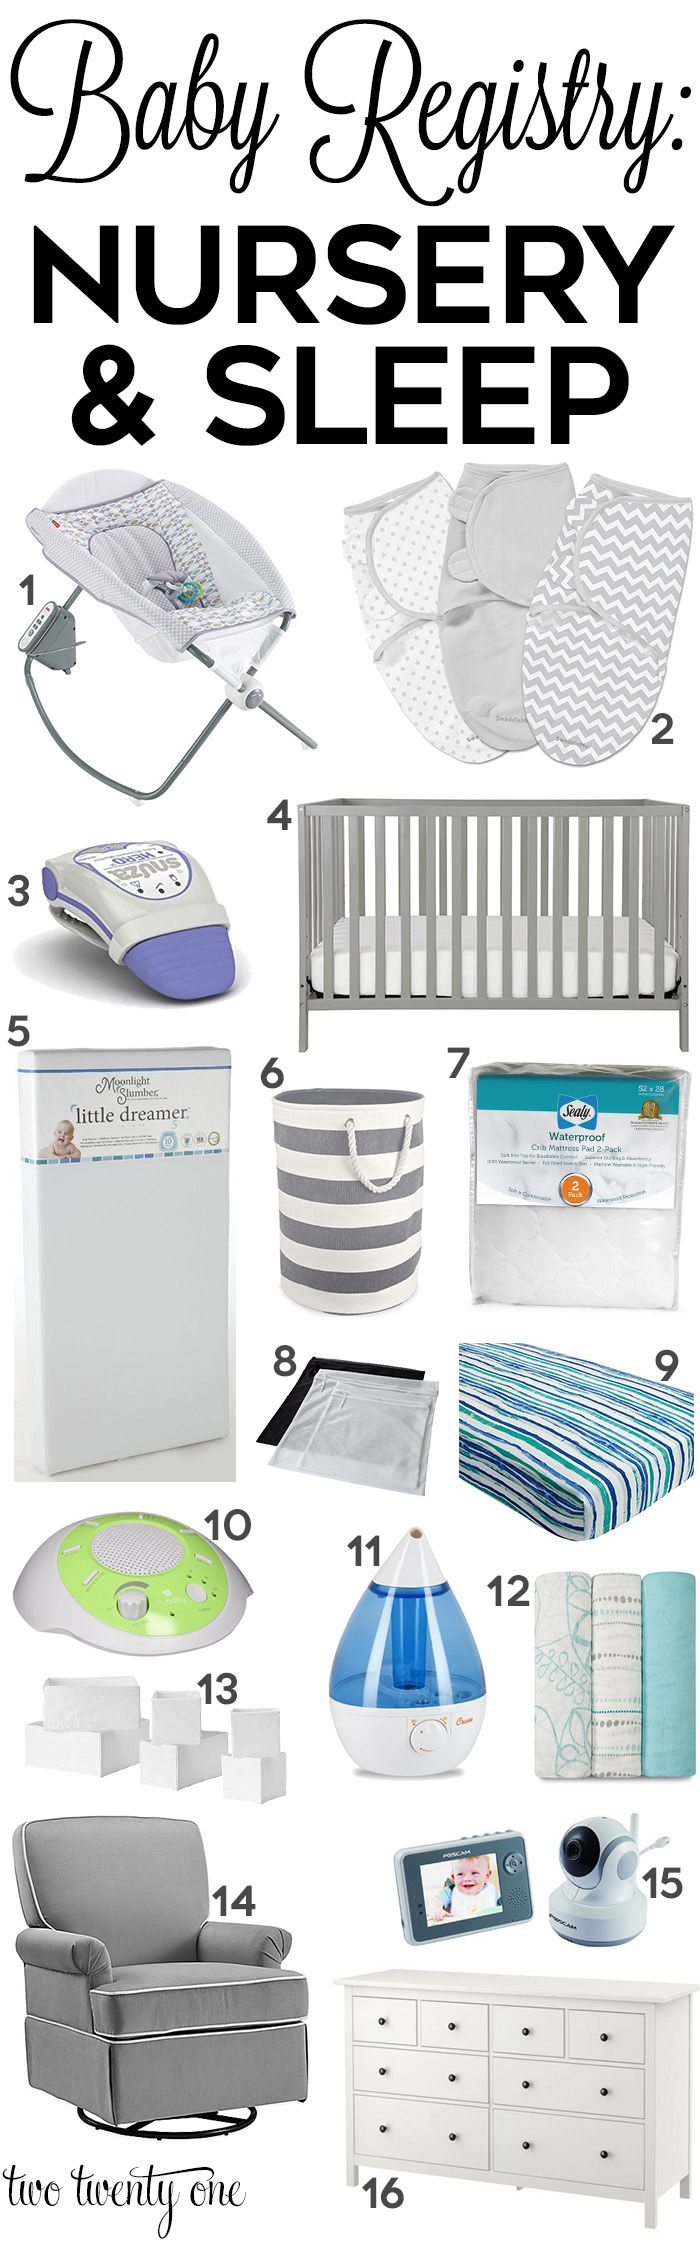 Nowhere near all of these, but good ideas. Must have nursery and sleep products to add to your baby registry!